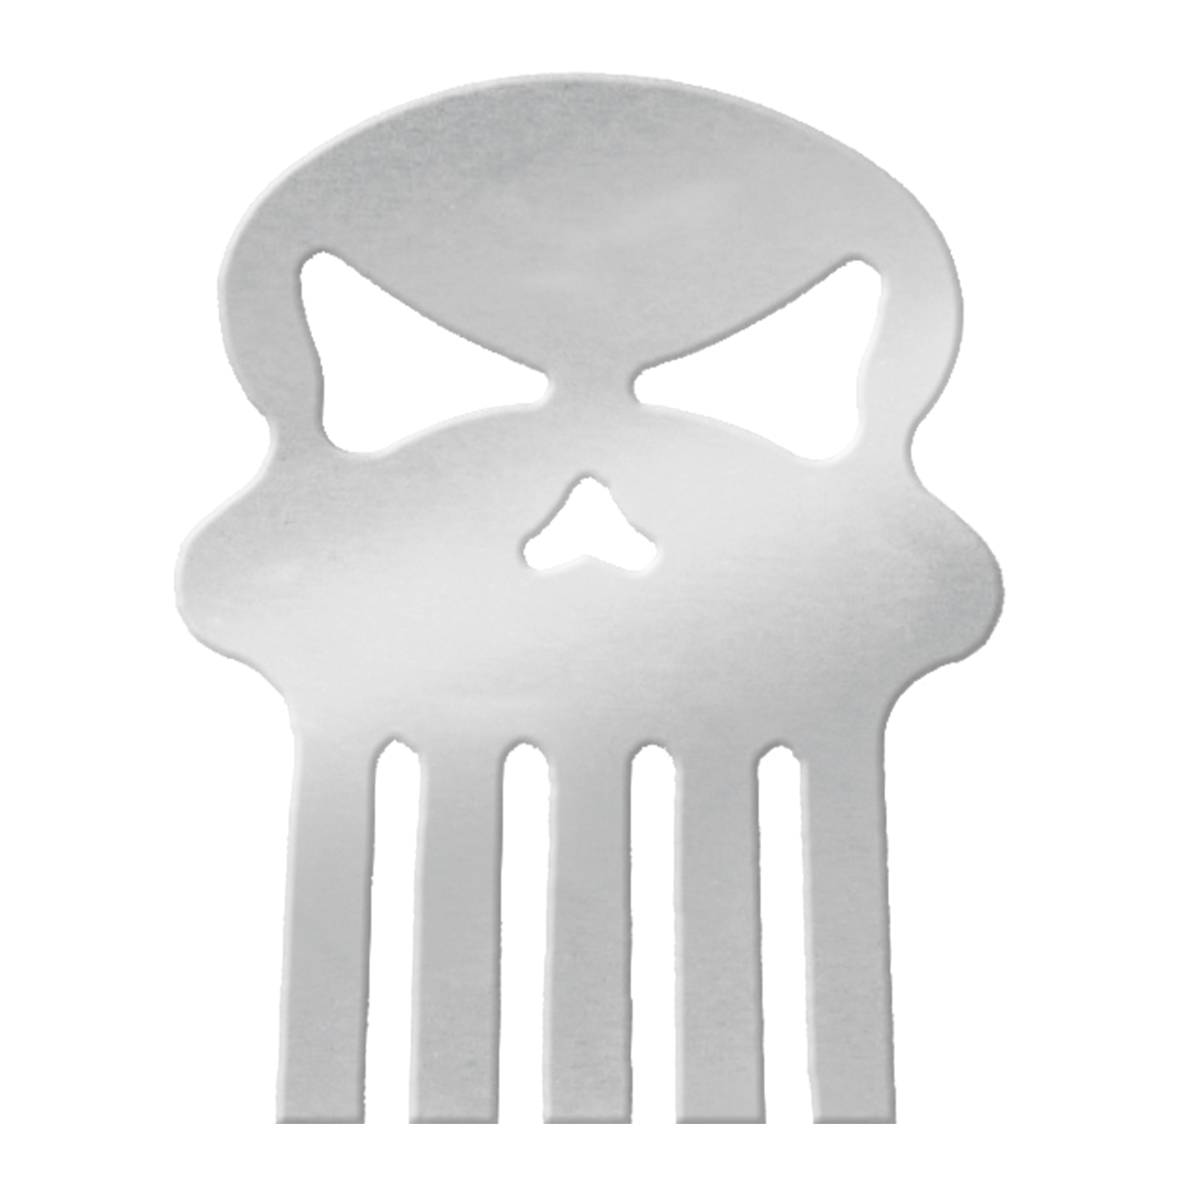 #94240 Large Skull Cut Out